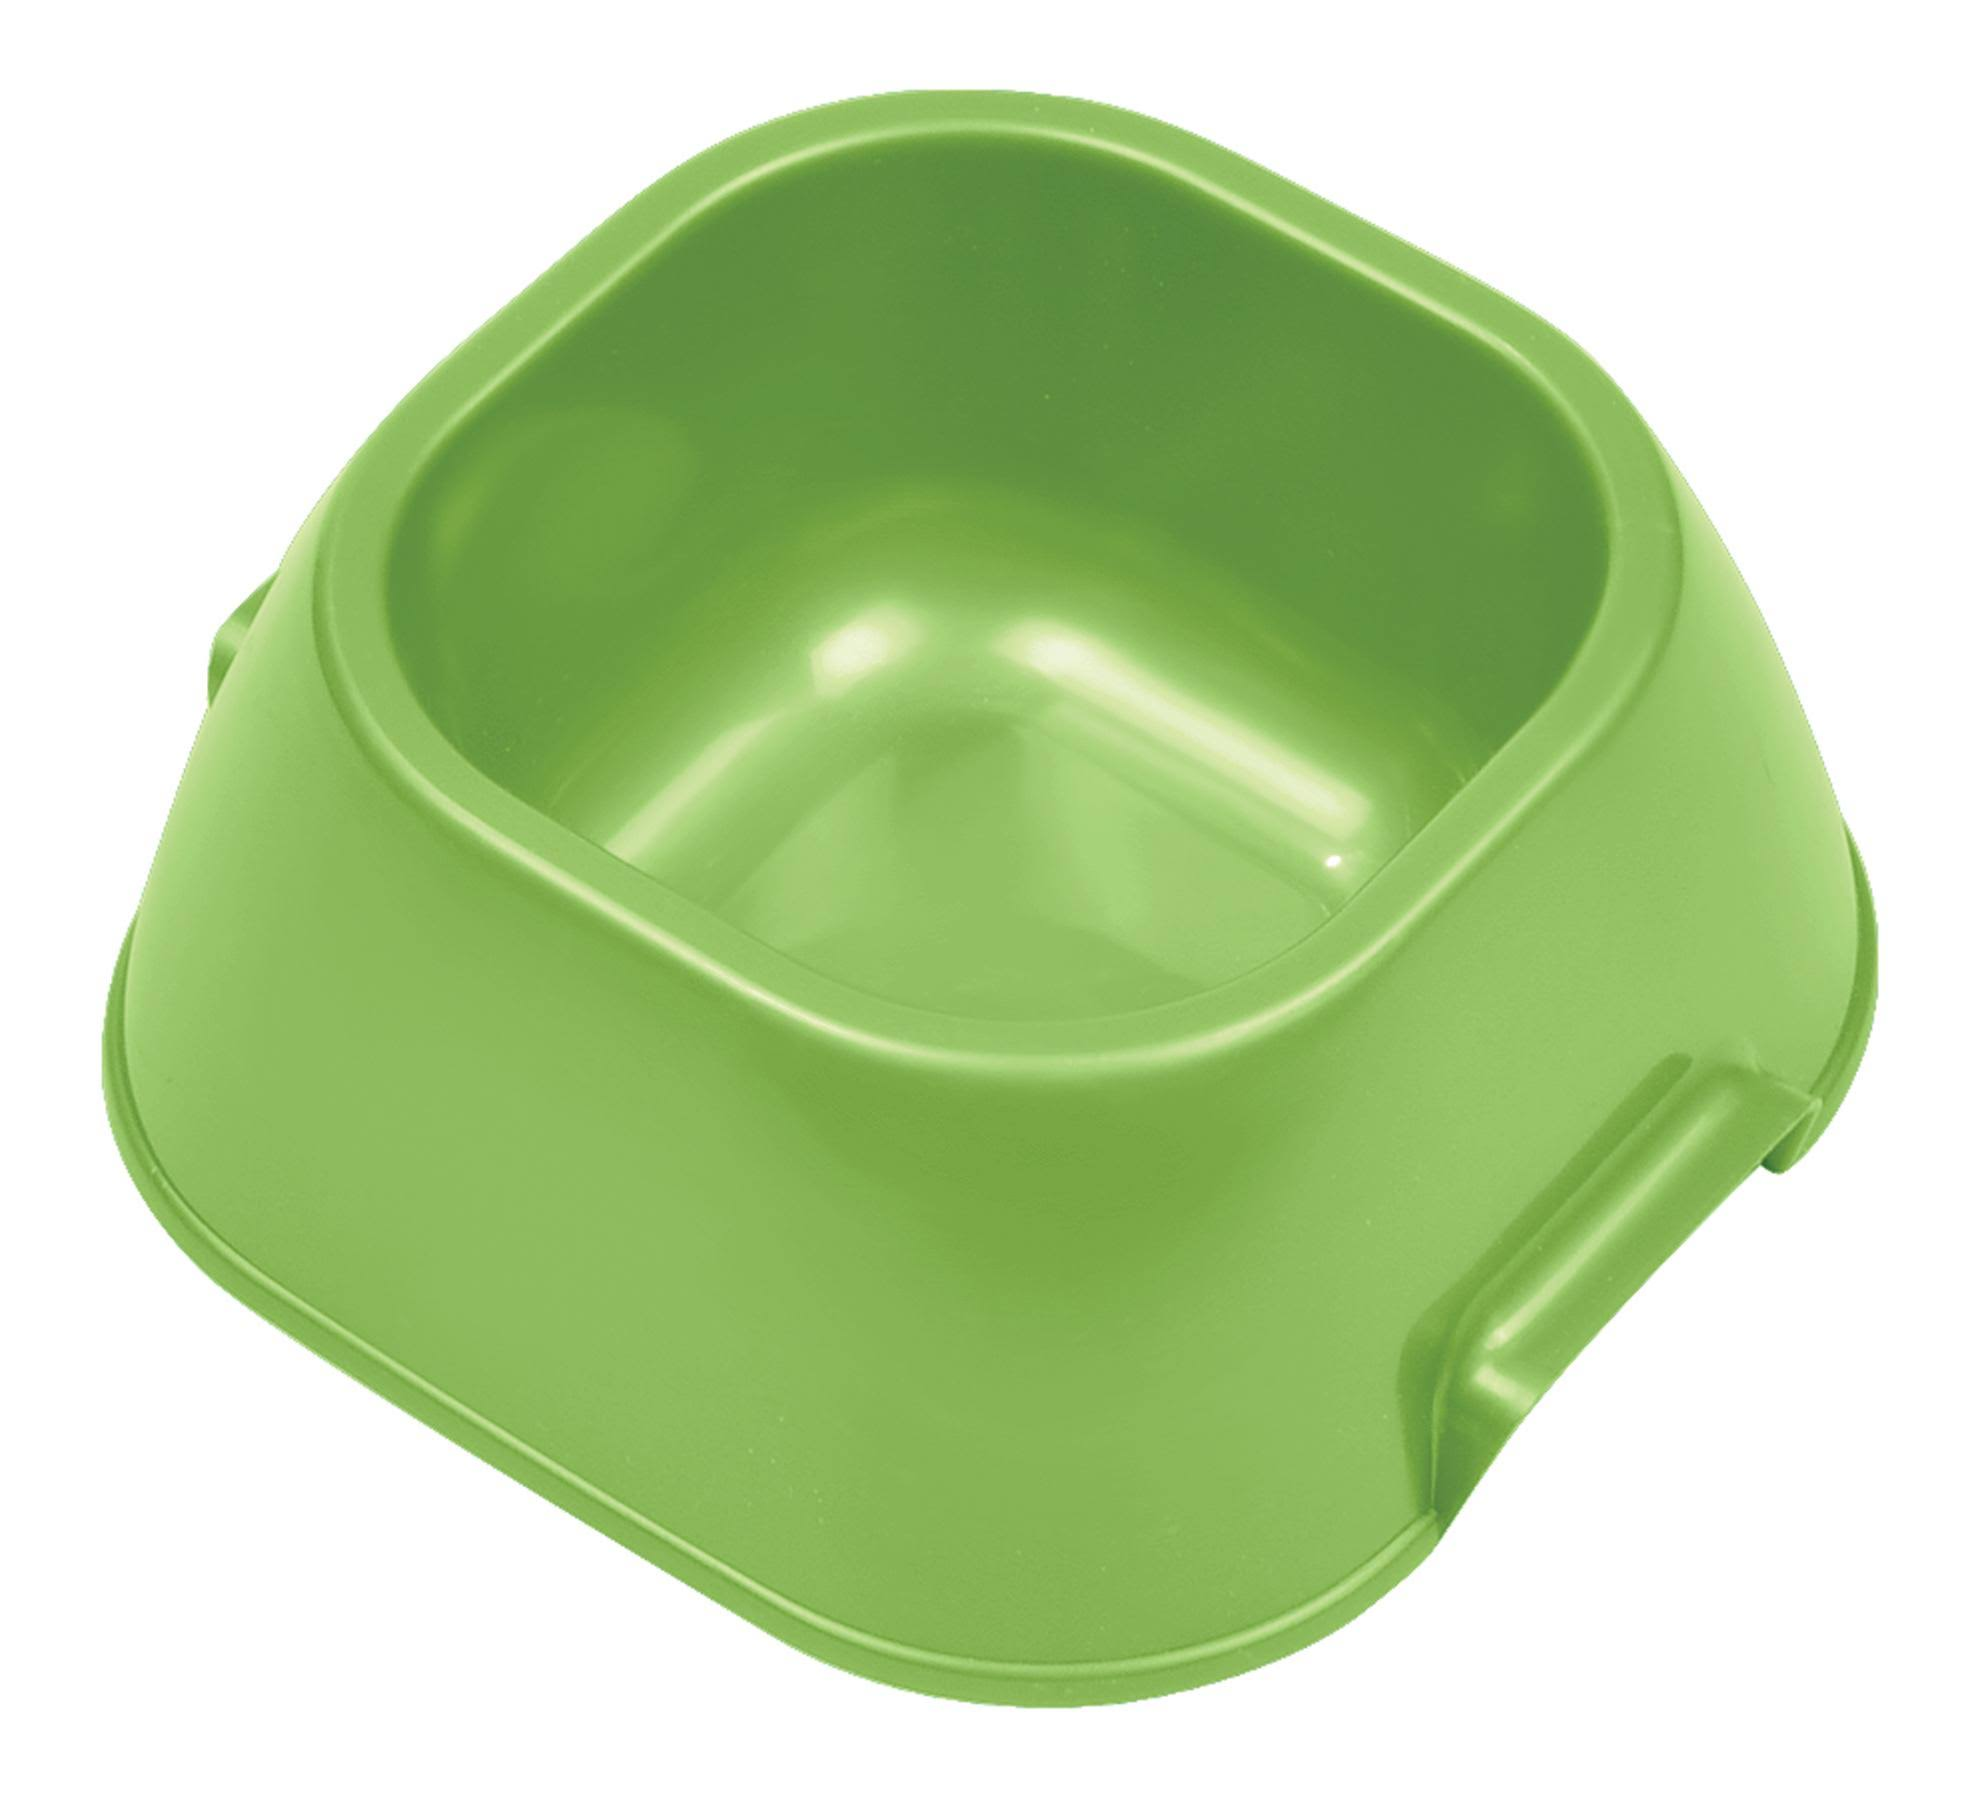 Van Ness Plastic Molding Lightweight Dish - Assorted, Medium